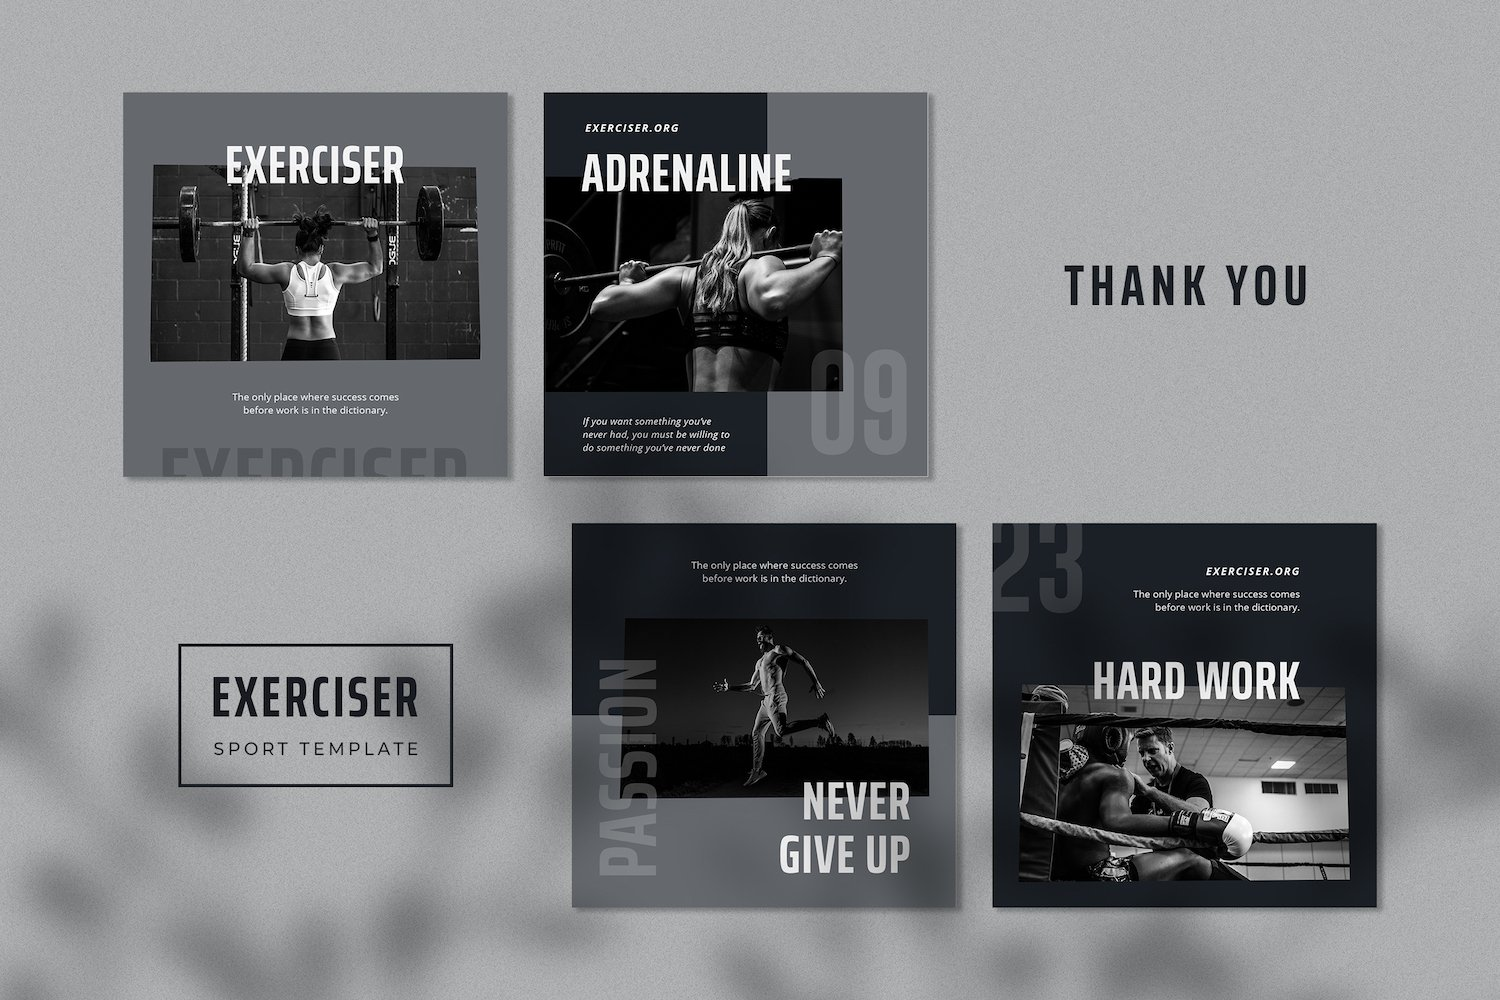 Exerciser - Gym & Fitness Instagram Post Template example image 4